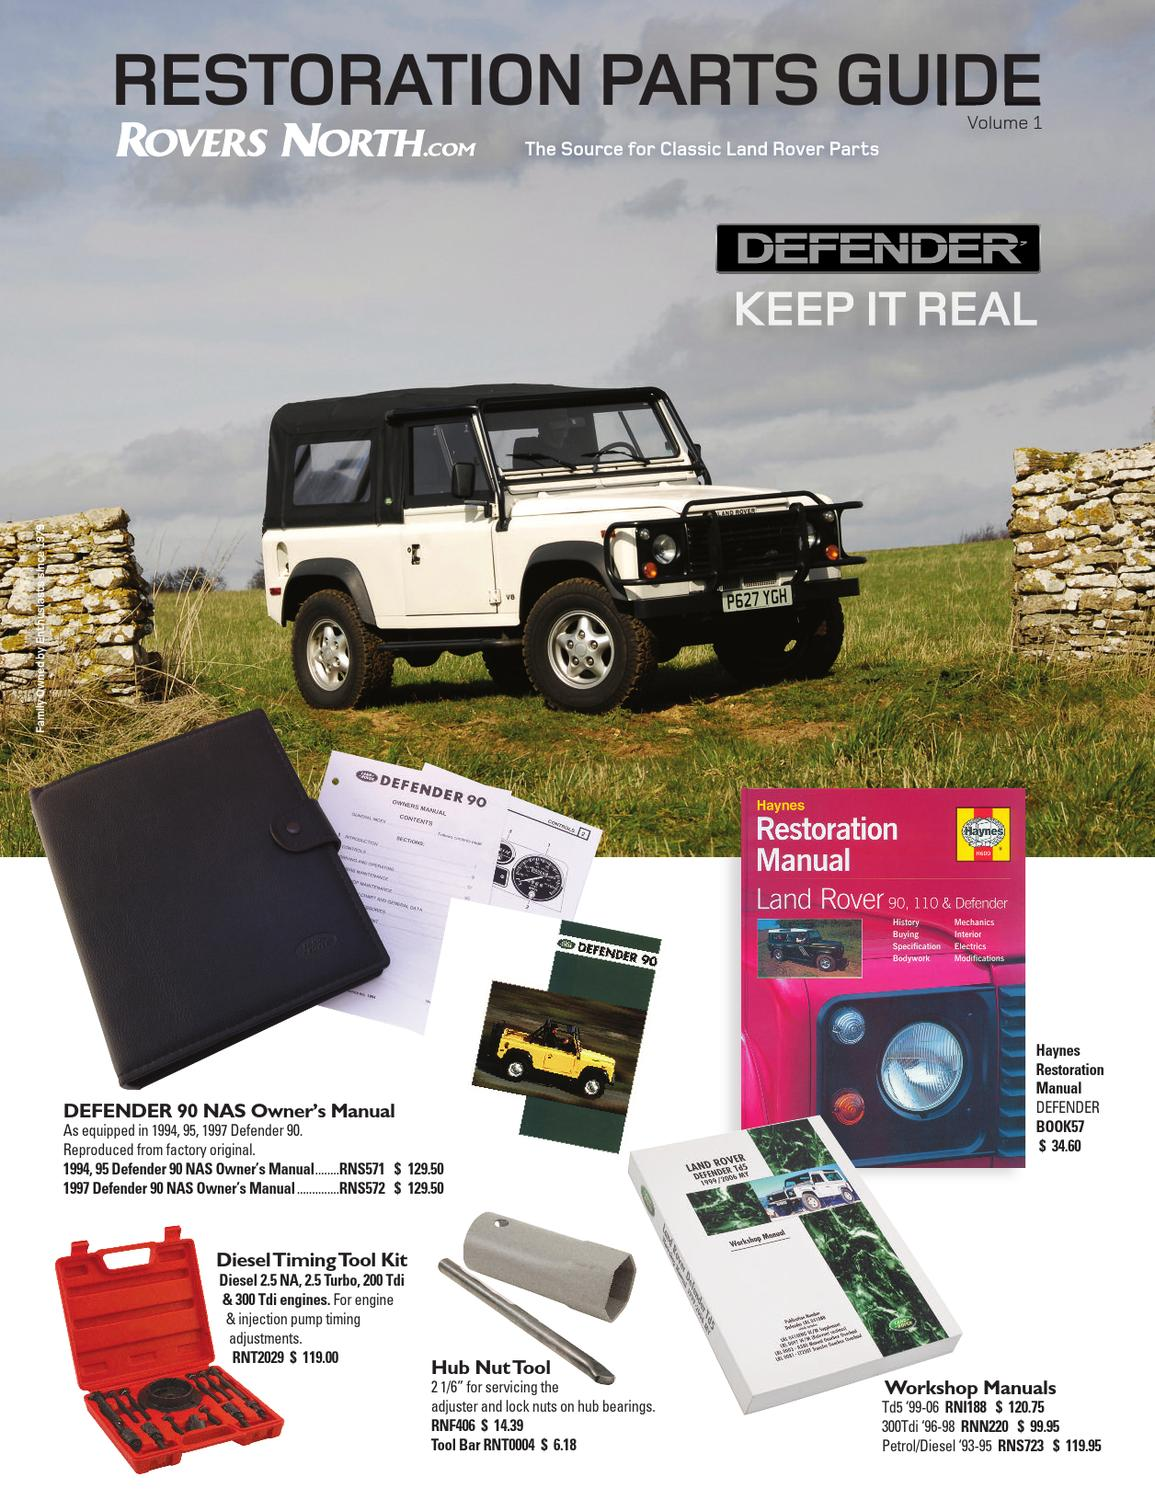 Land Rover Defender Restoration Guide Jan 2013 By Rovers North 1994 Jeep Wrangler Fuel Filter Location Issuu